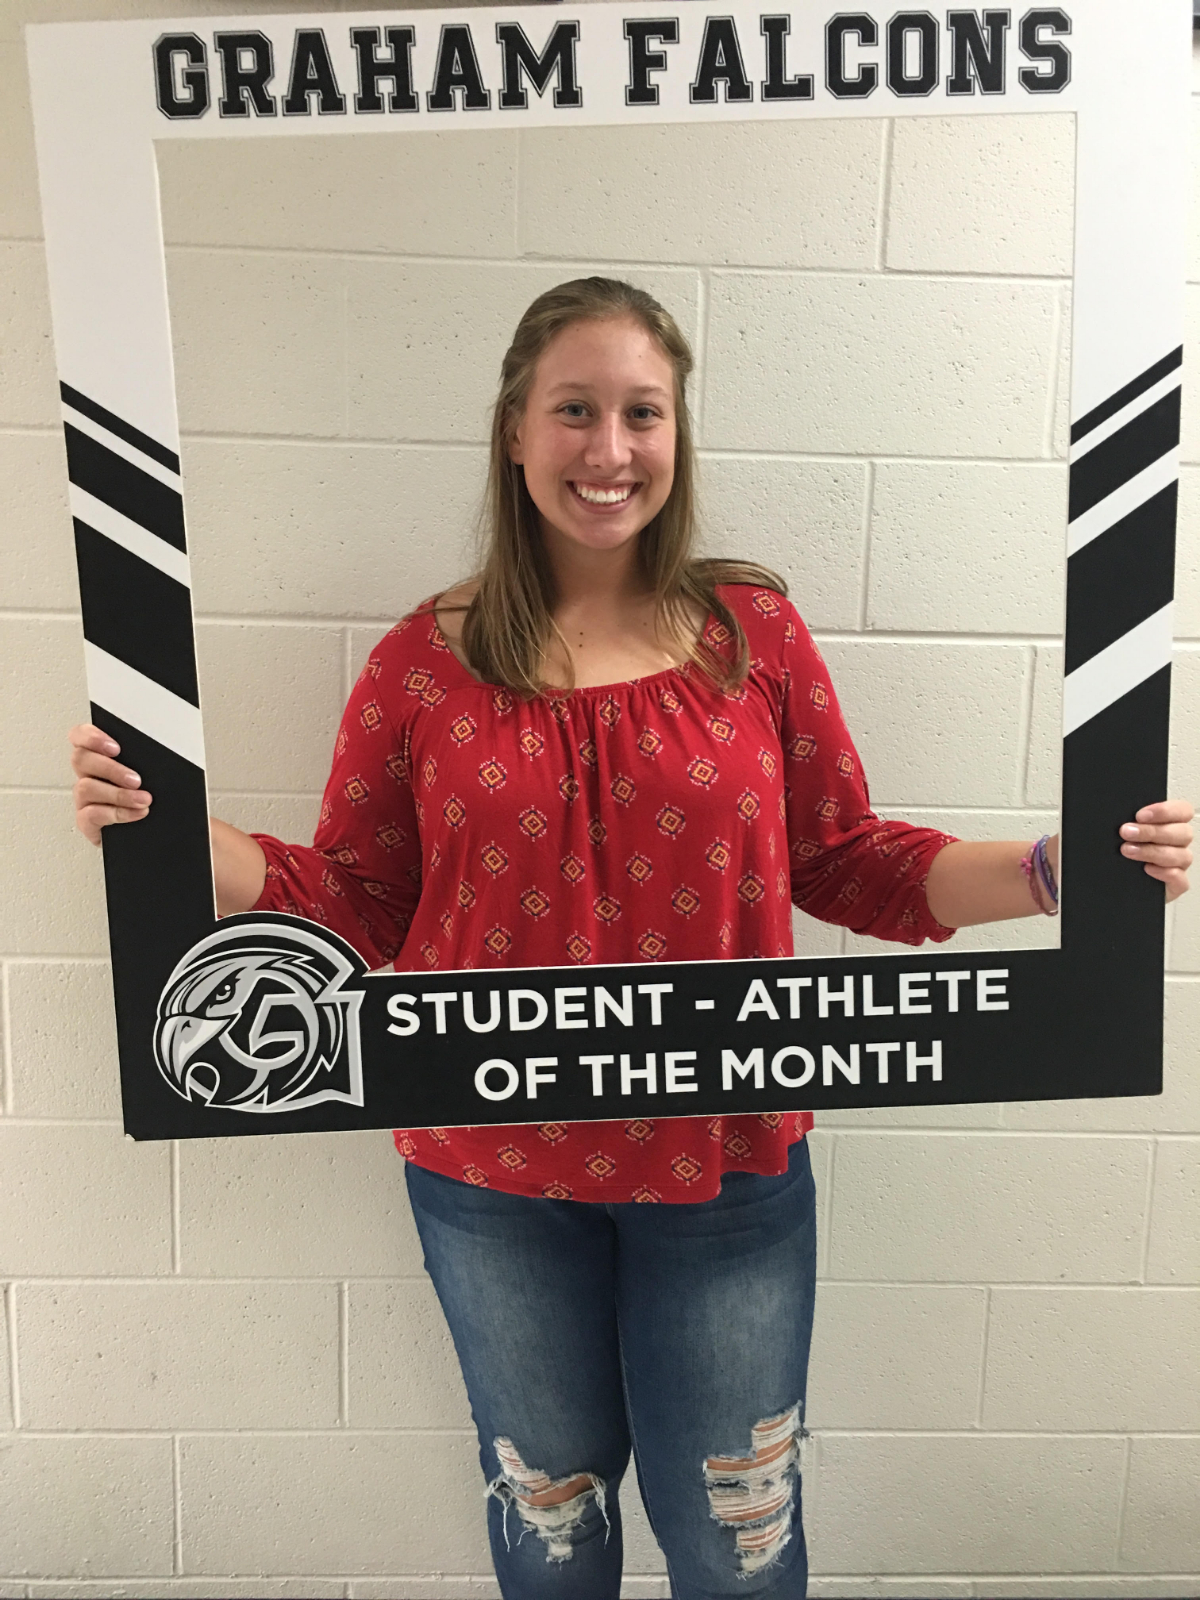 Congratulations to the September student-athlete of the month.. Morgan Pine!